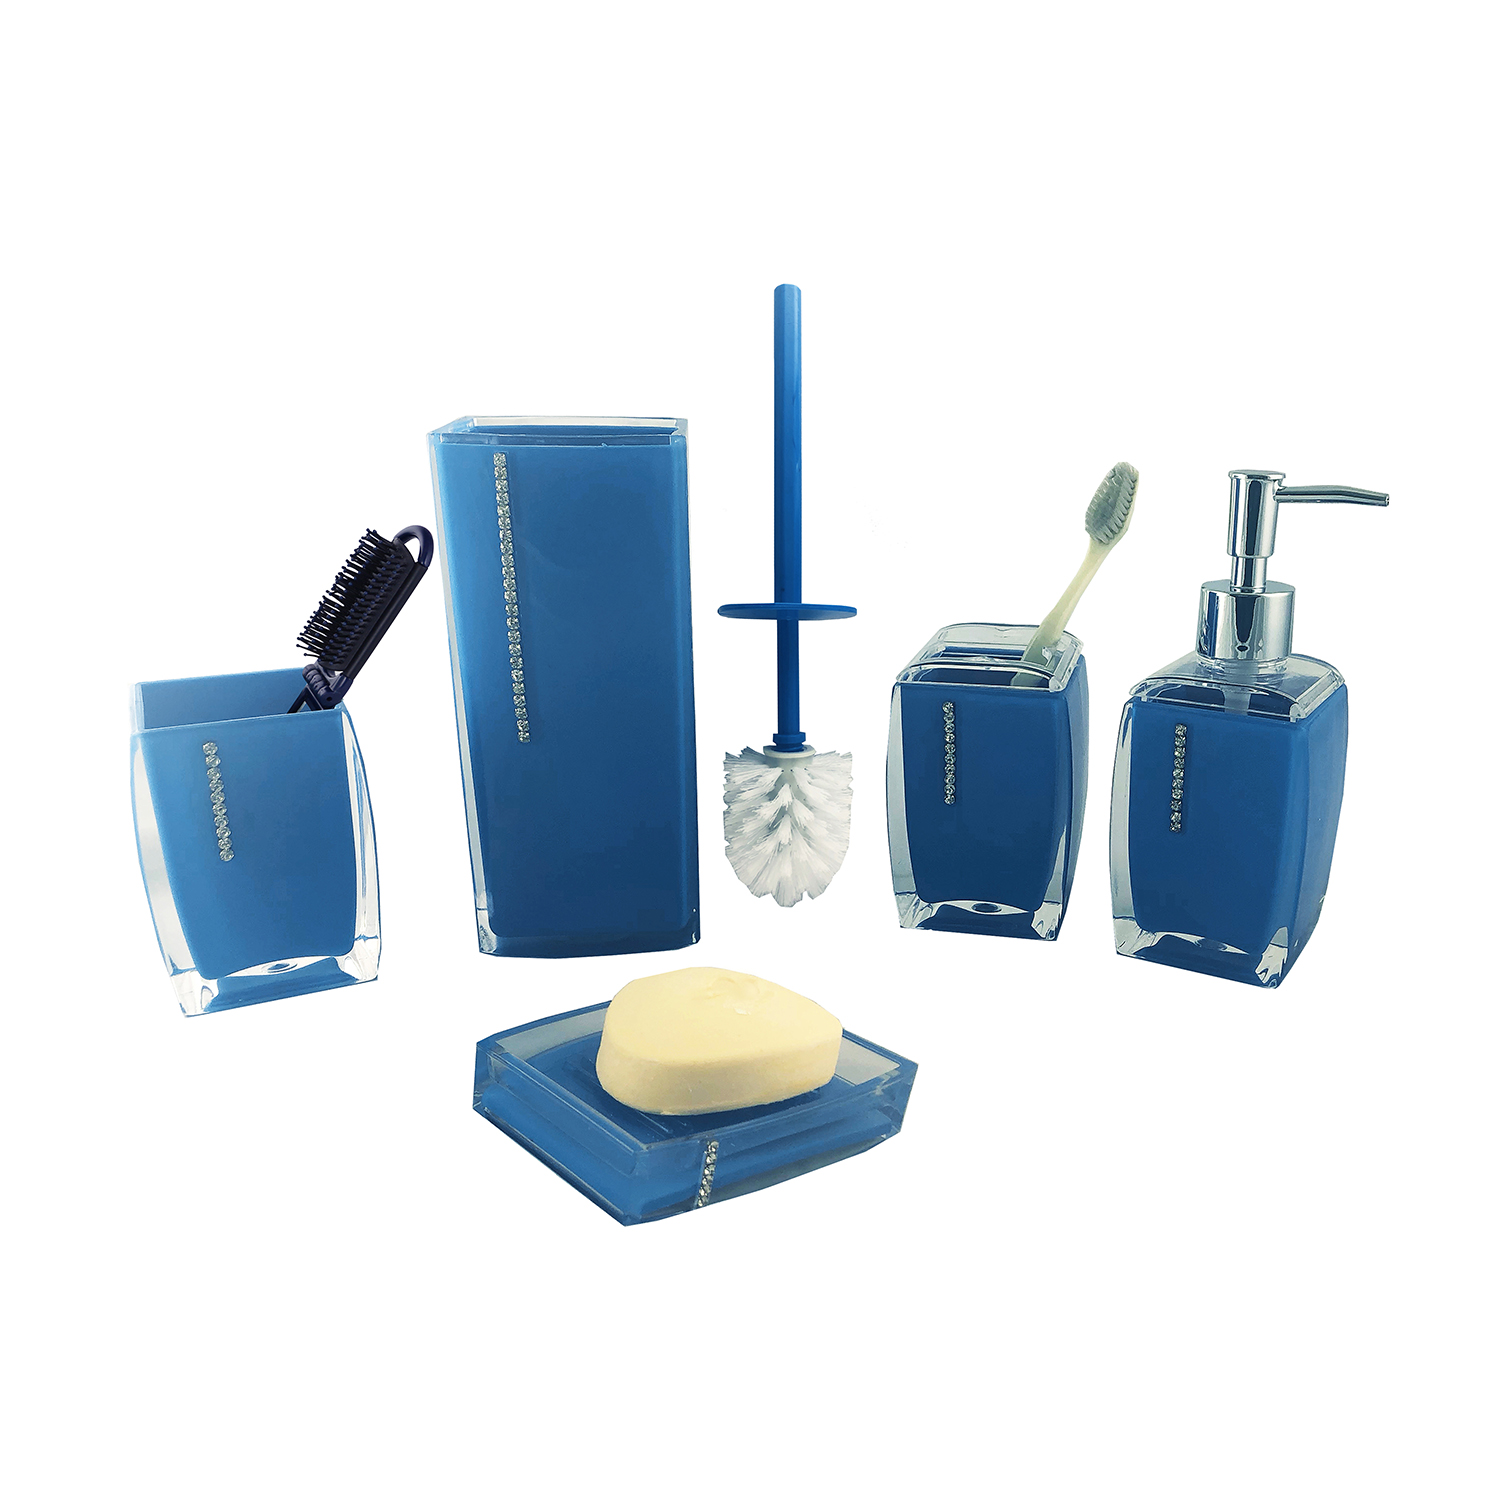 6-PC BATHROOM SET, BLUE W/ CRYSTALS